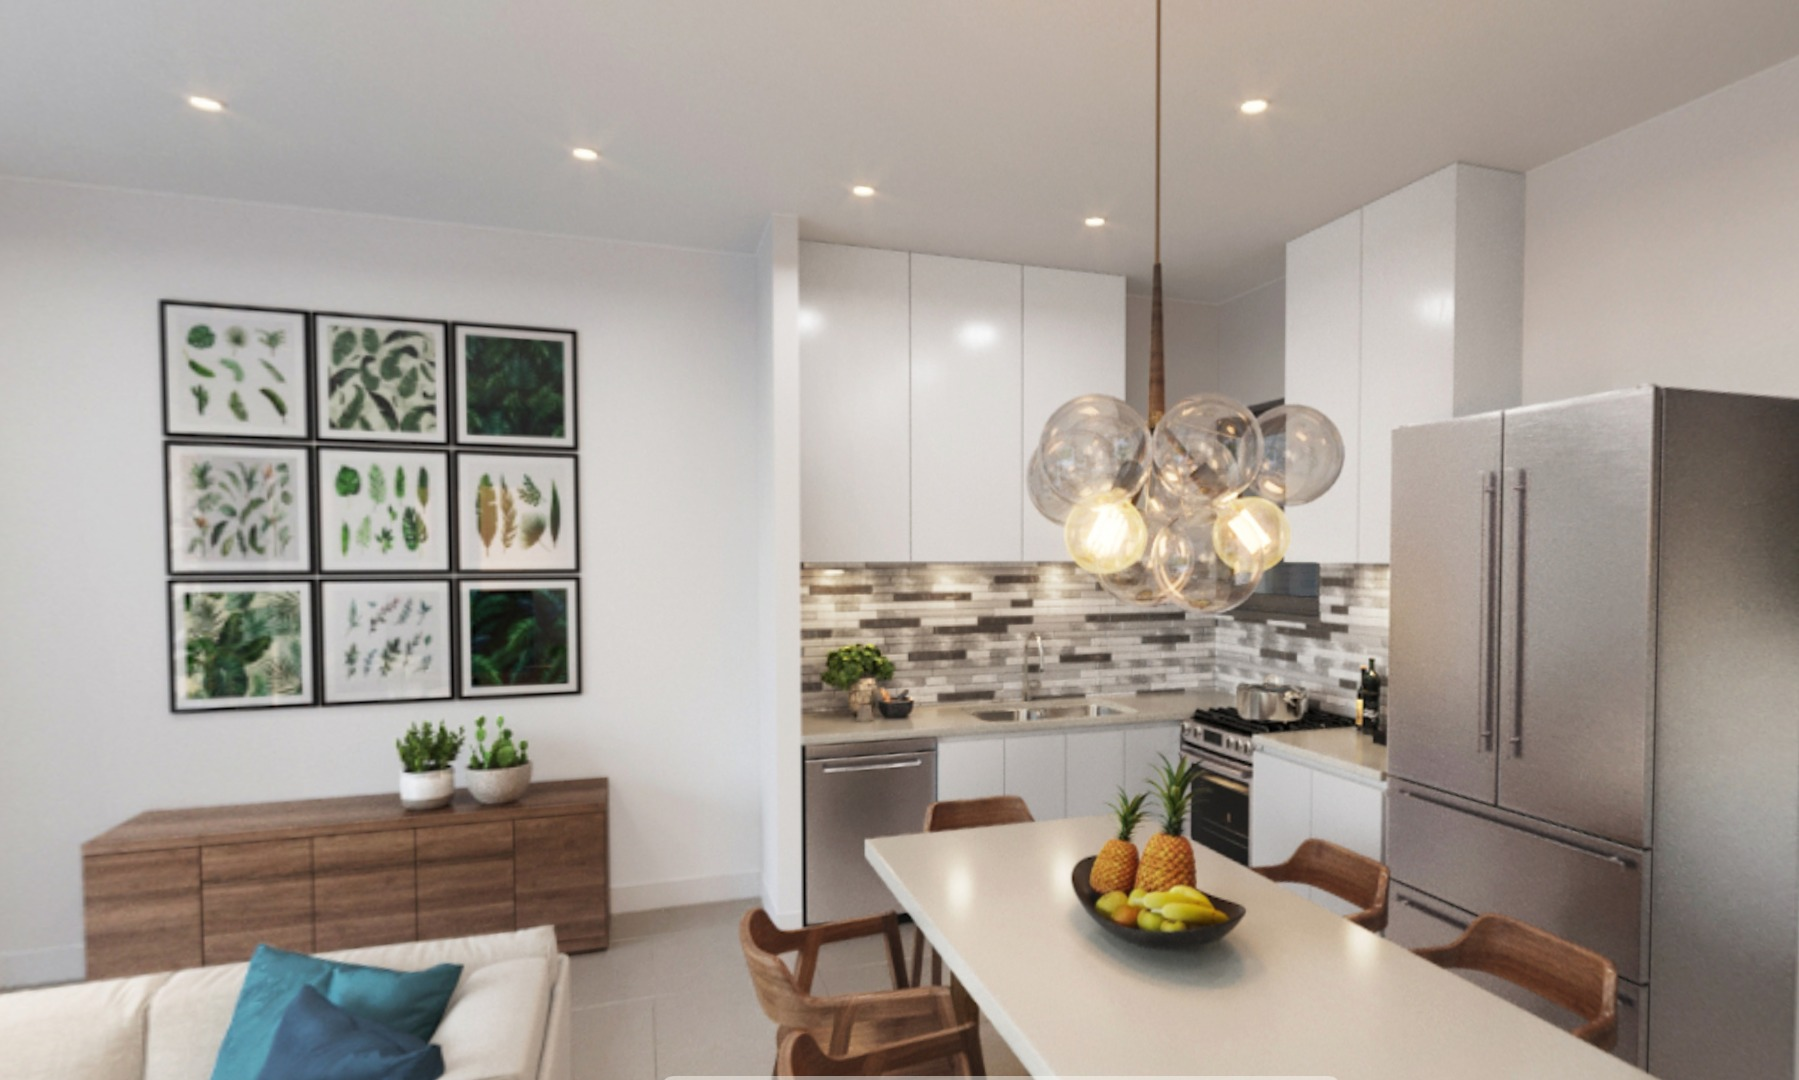 1 Bedroom Apartment / Flat For Sale in Bain Boeuf